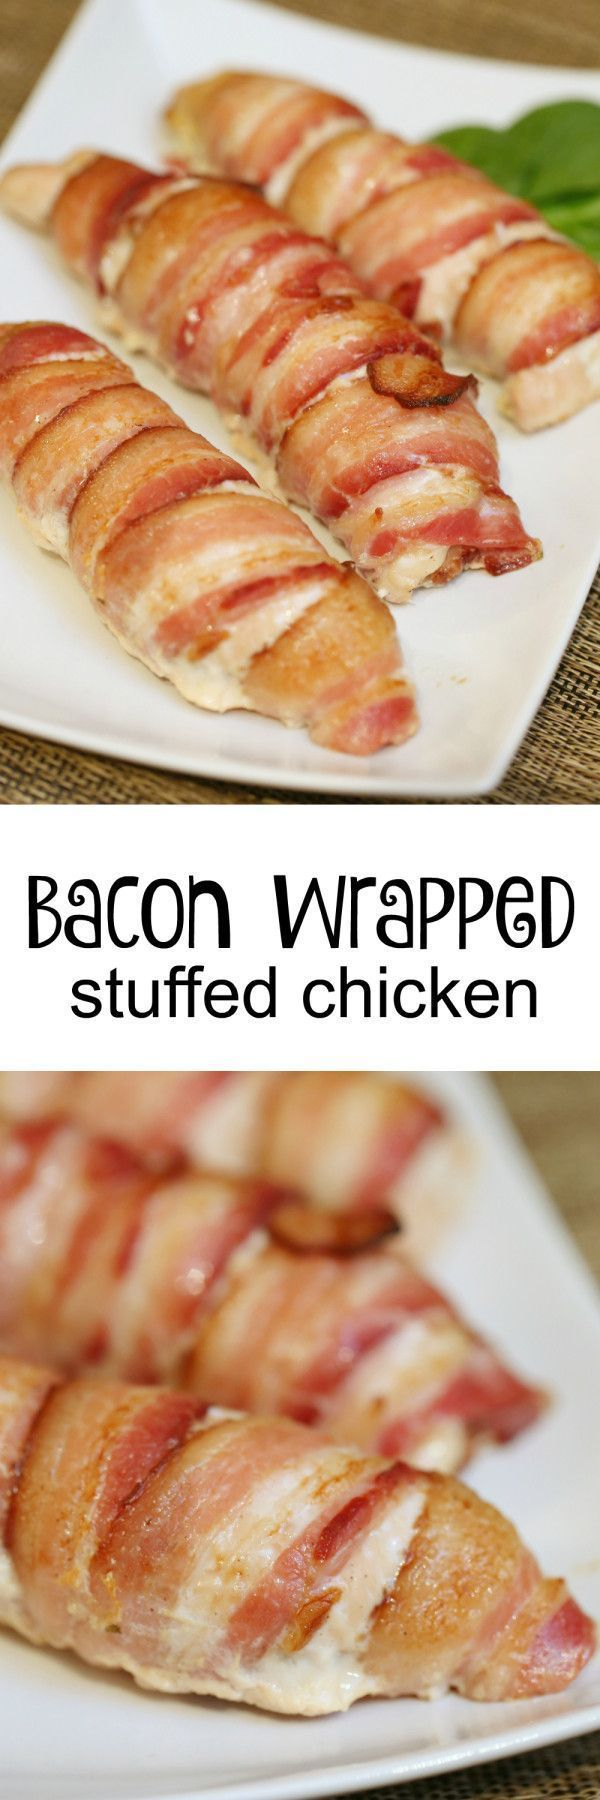 With a mouthful name like, 'Bacon Wrapped Stuffed Chicken' you'd assume it be a complicated and time-consuming recipe. It IS a mouthful of delicious ..